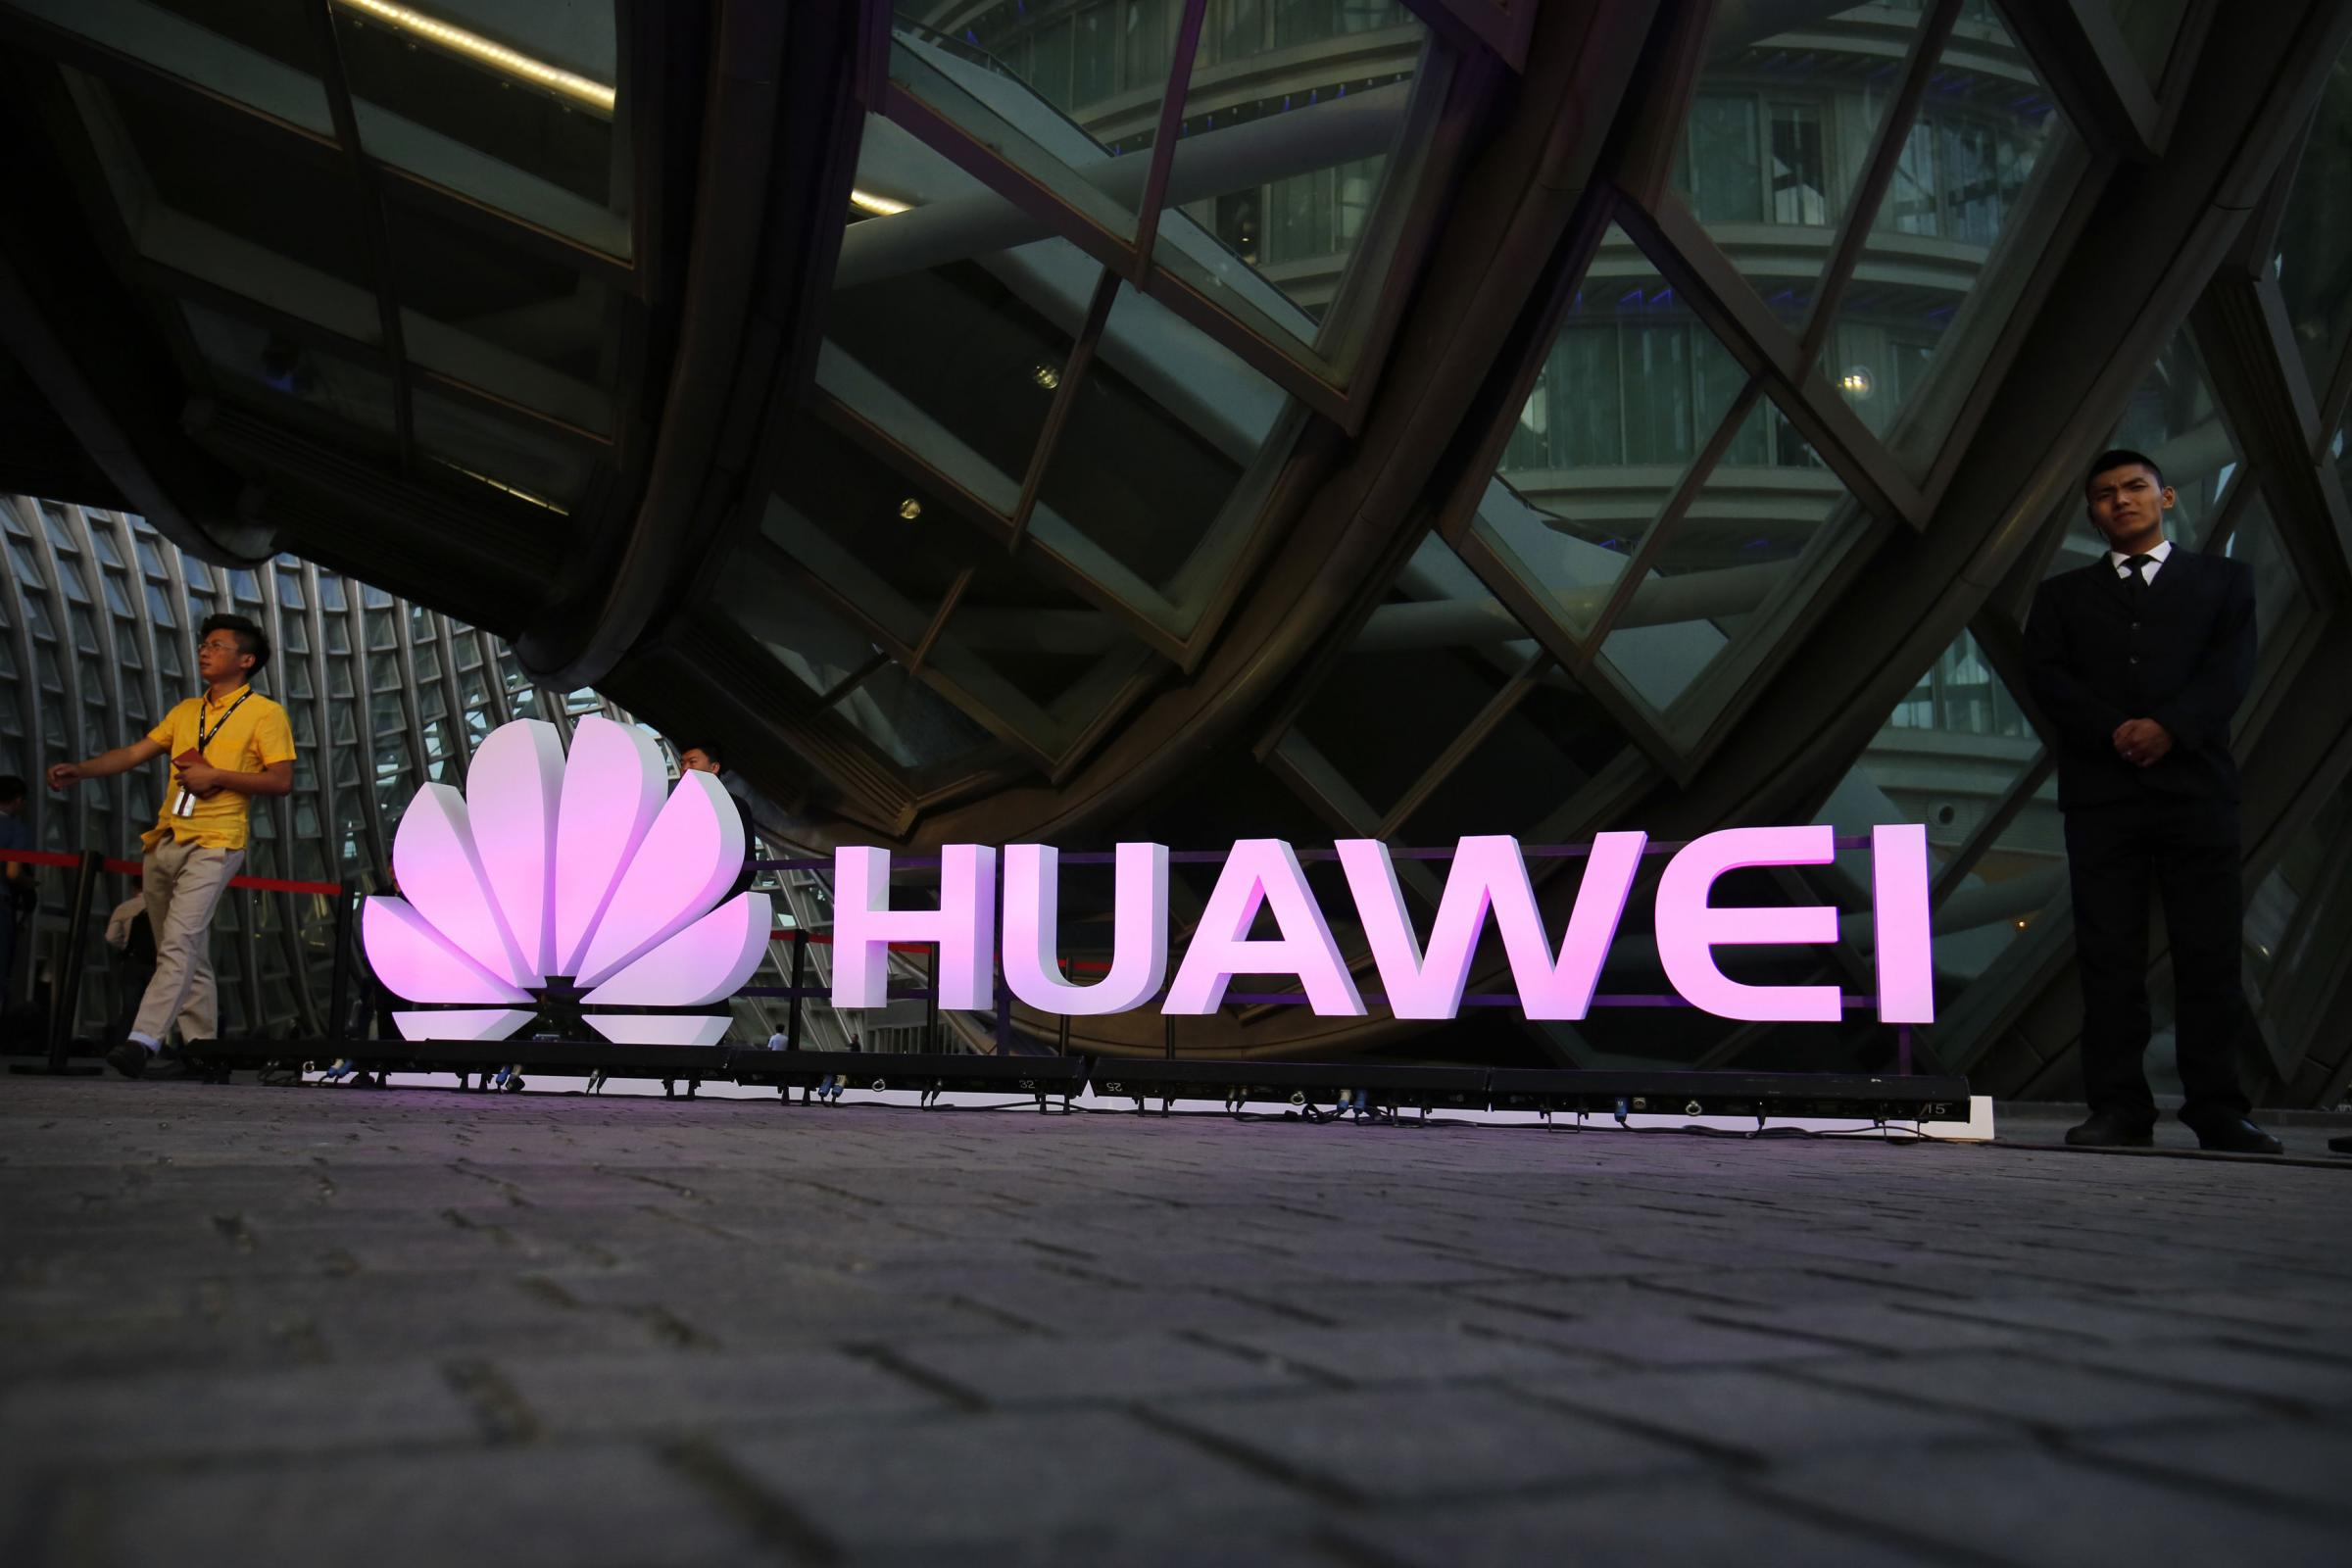 Huawei is the dominant player in China's smartphone market